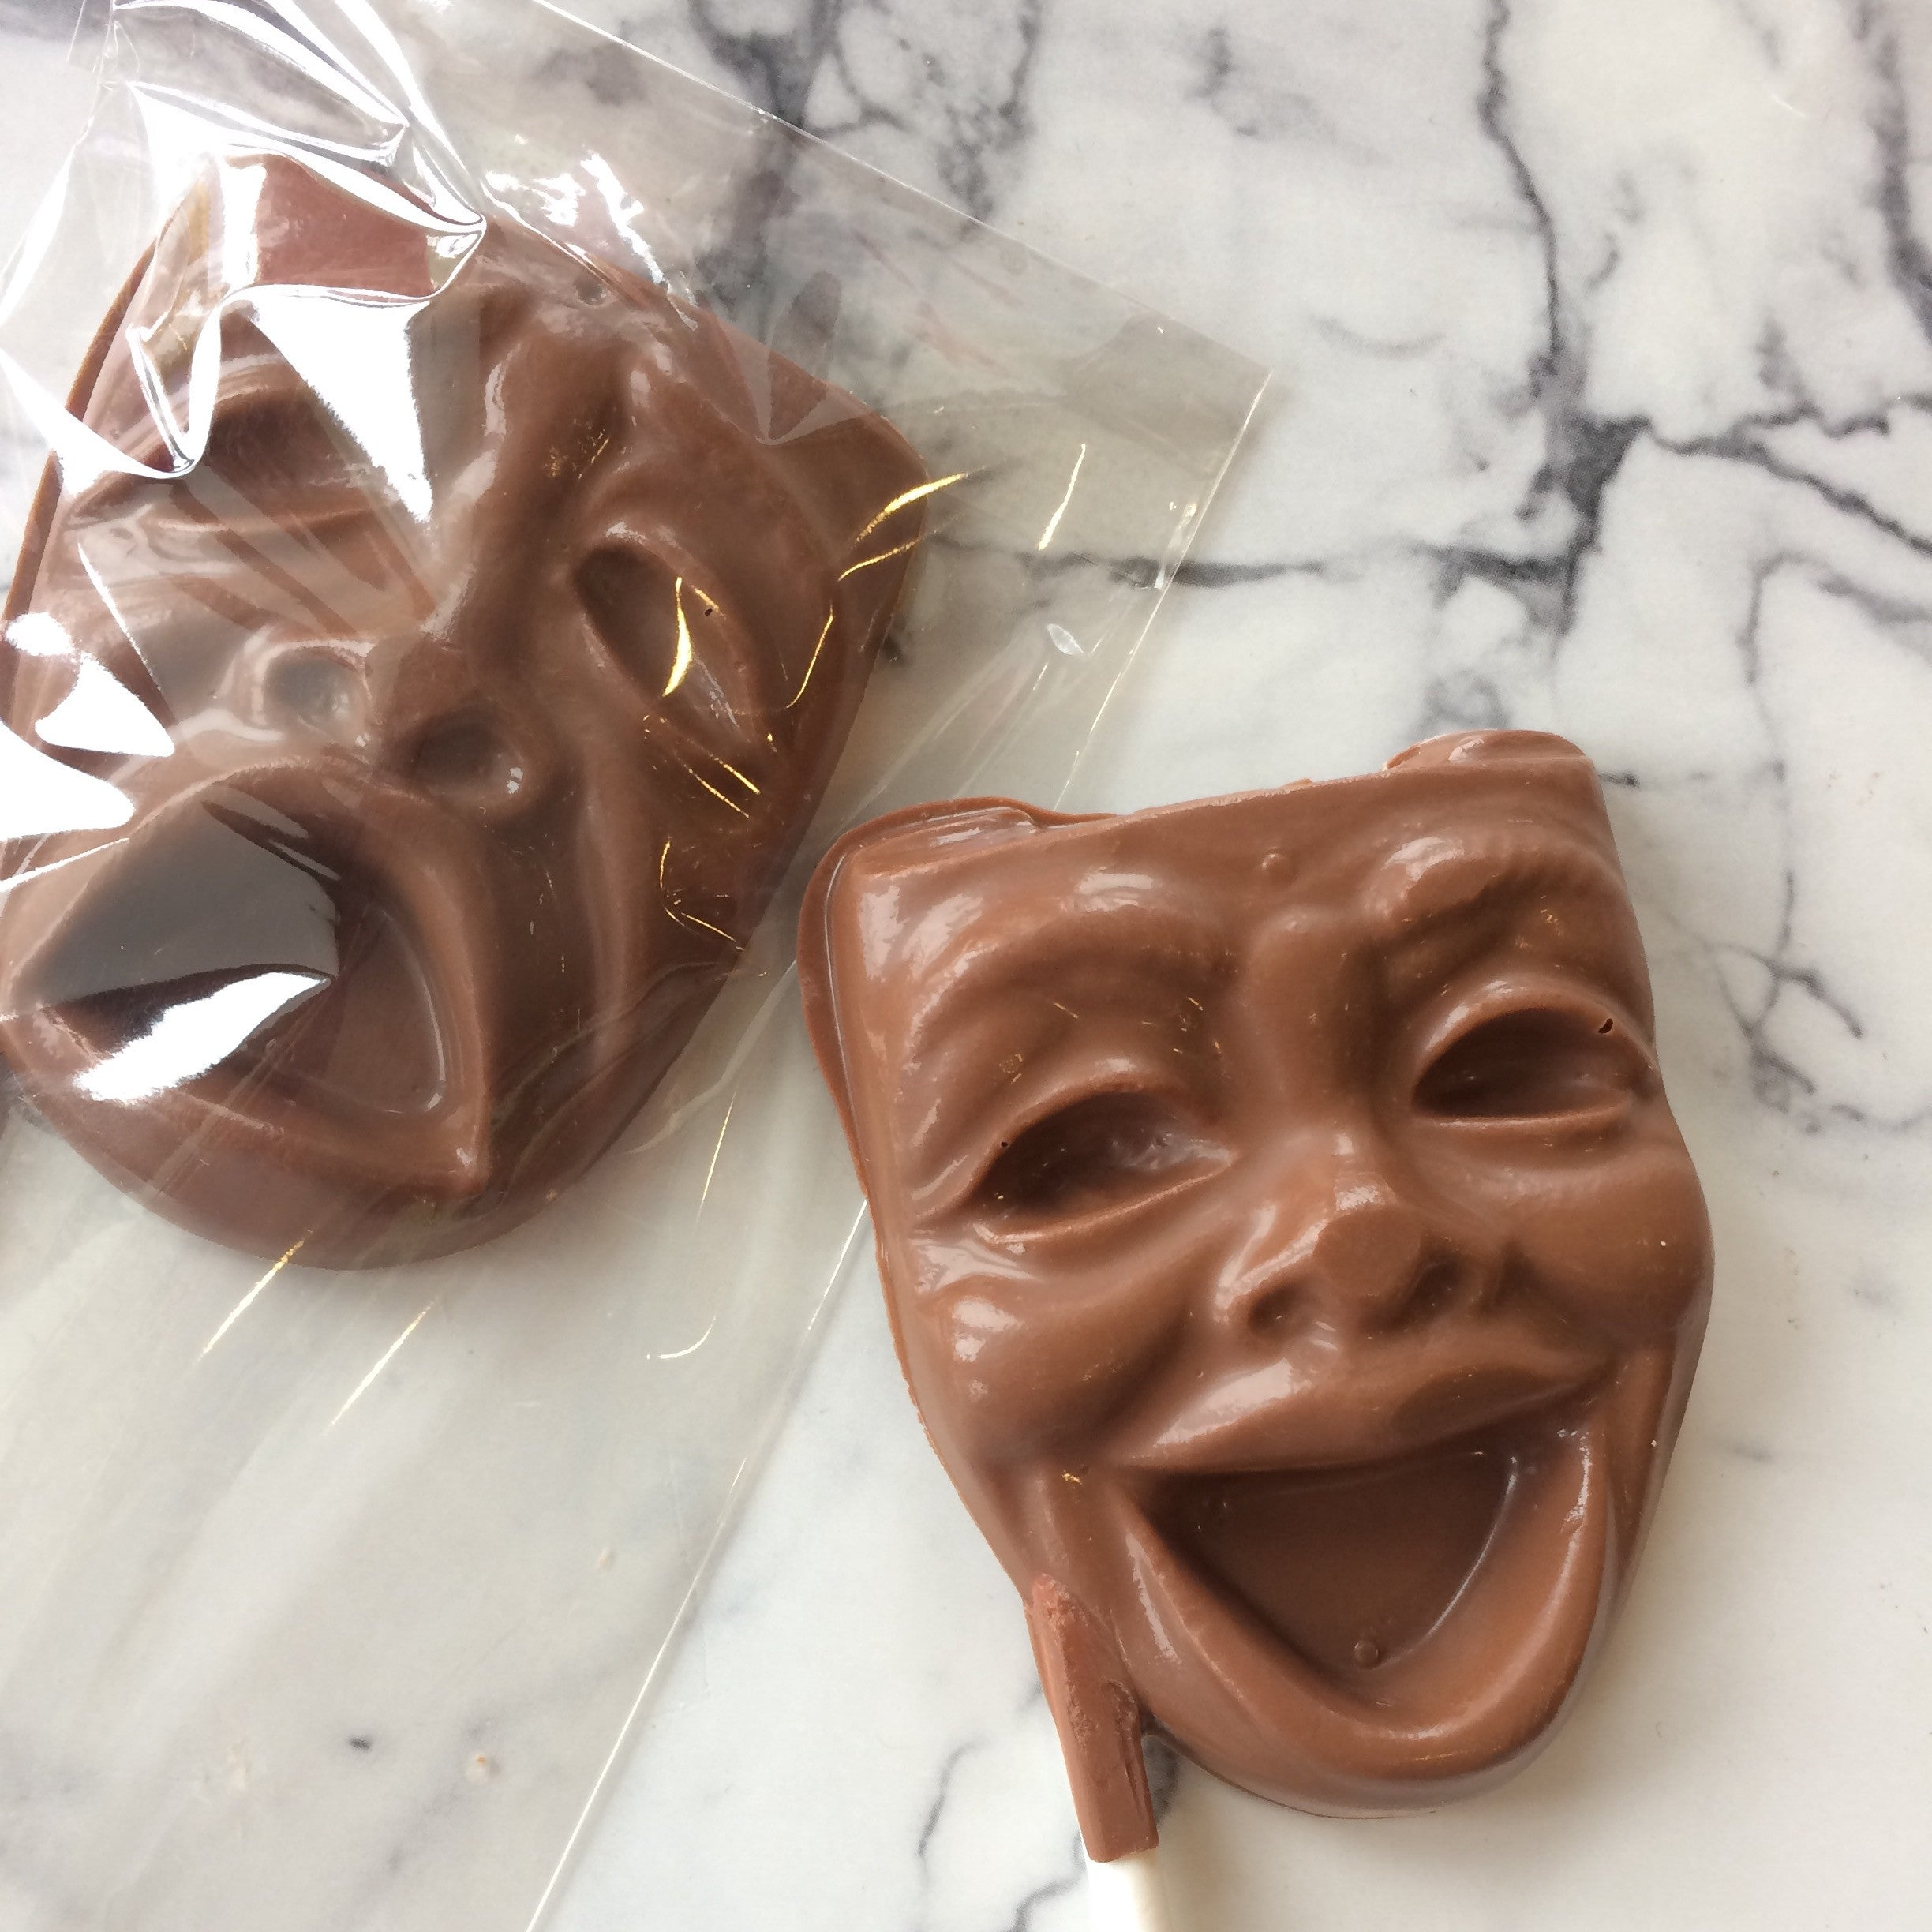 Chocolate drama masks comedy and tragedy